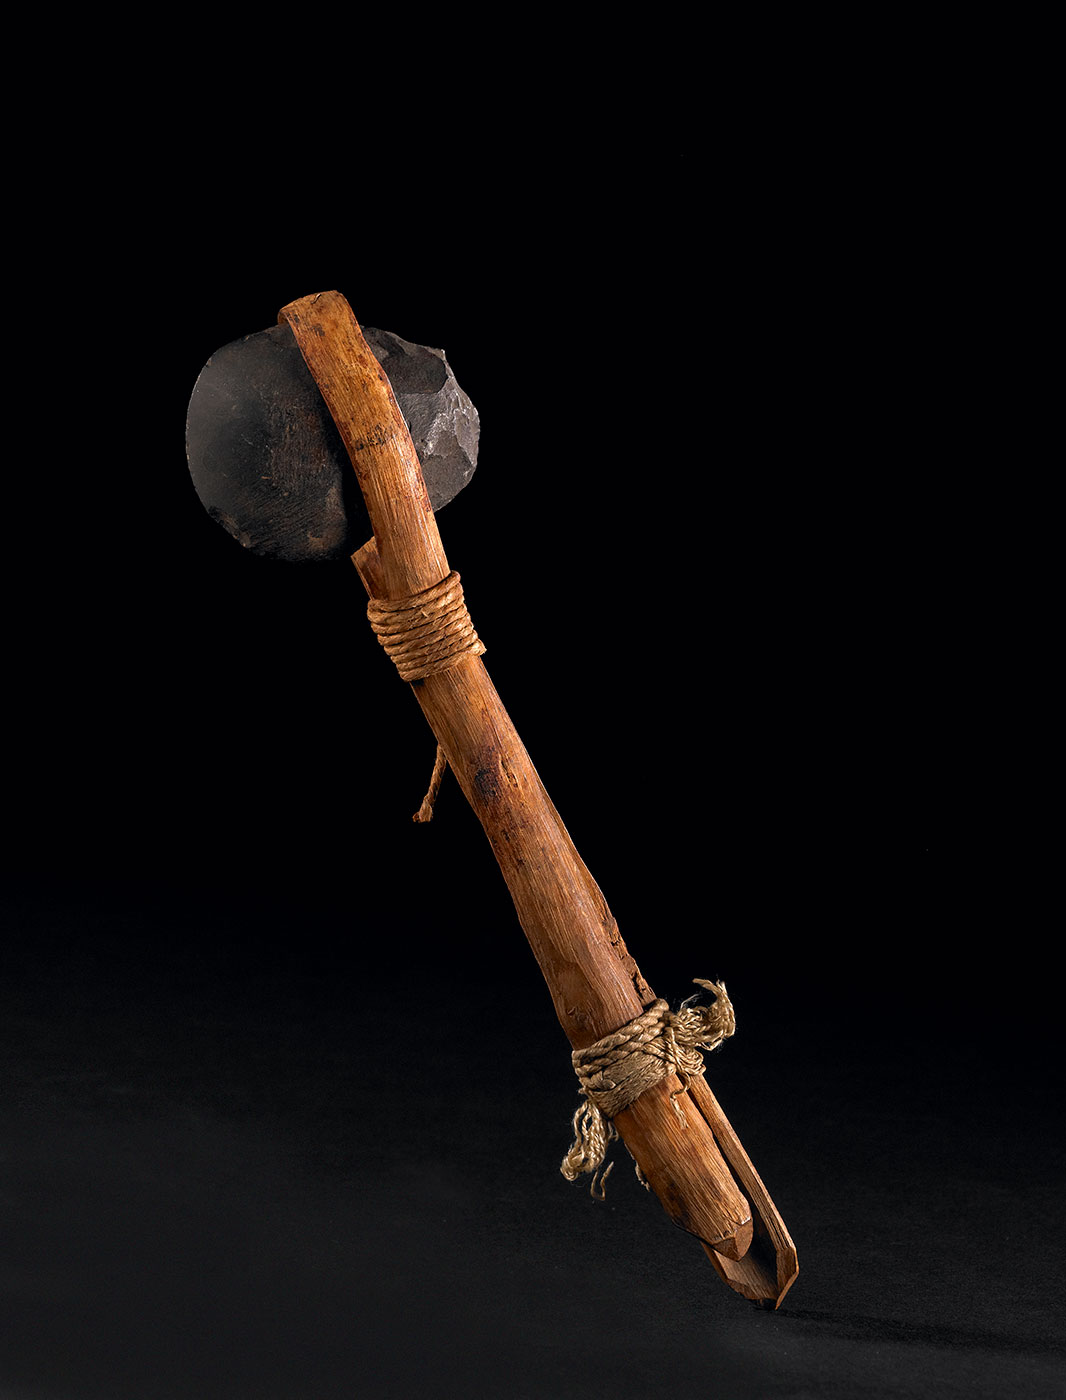 An axe made of stone, wood and rope. - click to view larger image